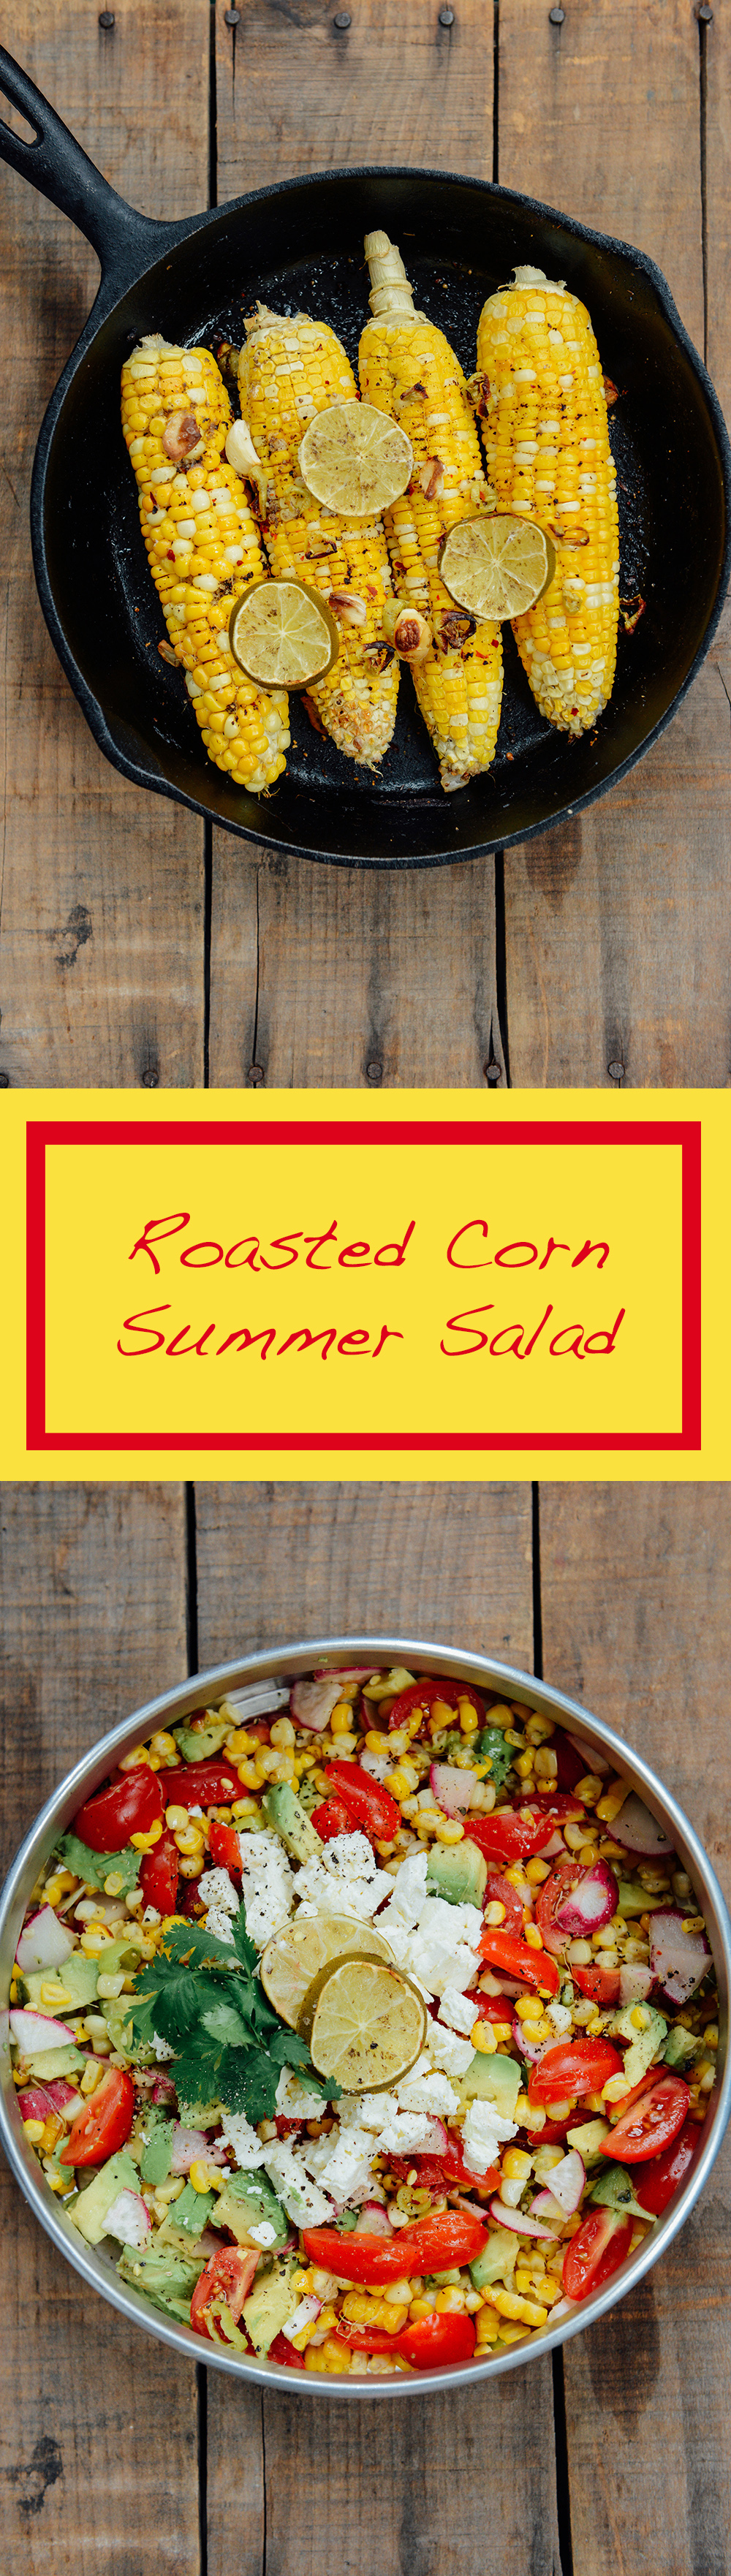 Roasted Corn Summer Salad // www.WithTheGrains.com